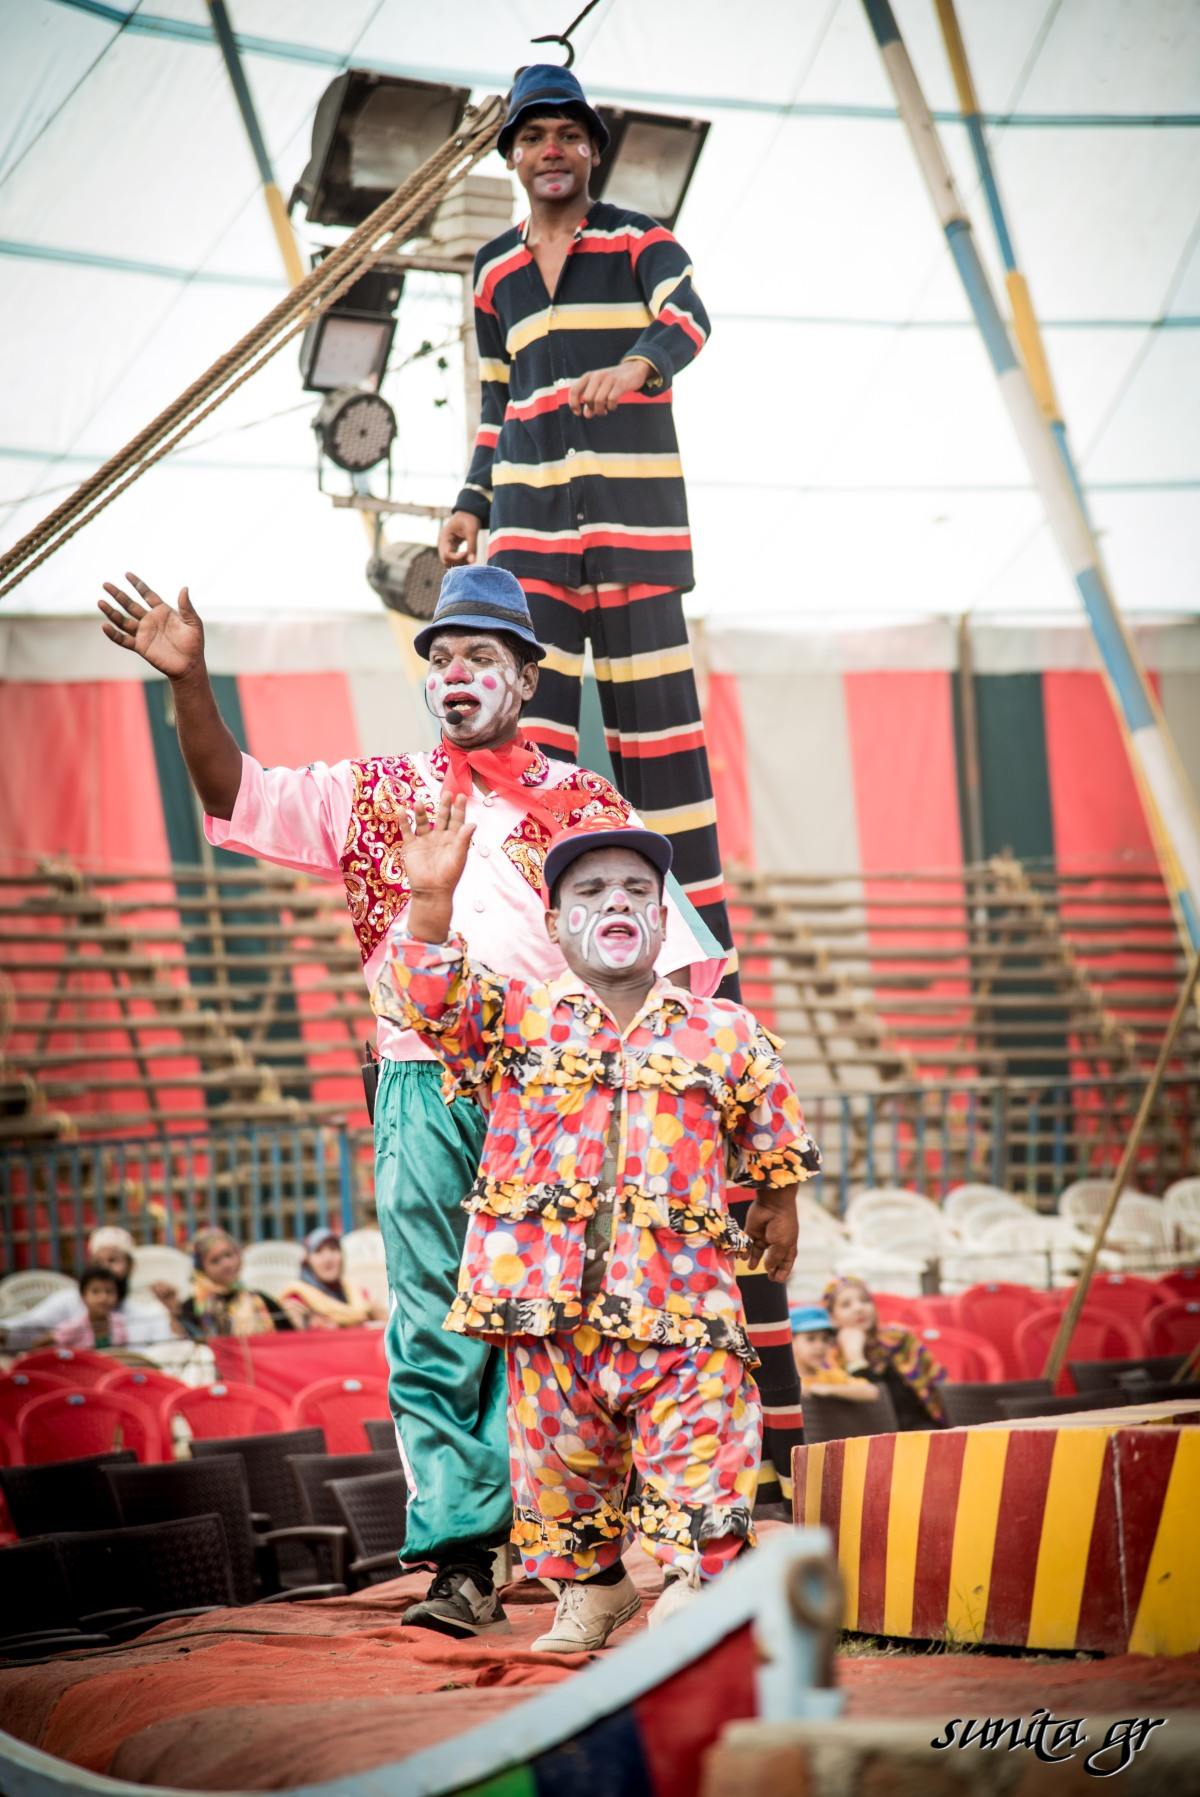 #india, #circus, #behindthescenes, #art, #artistes, #dying, #people, #culture, #delhi,